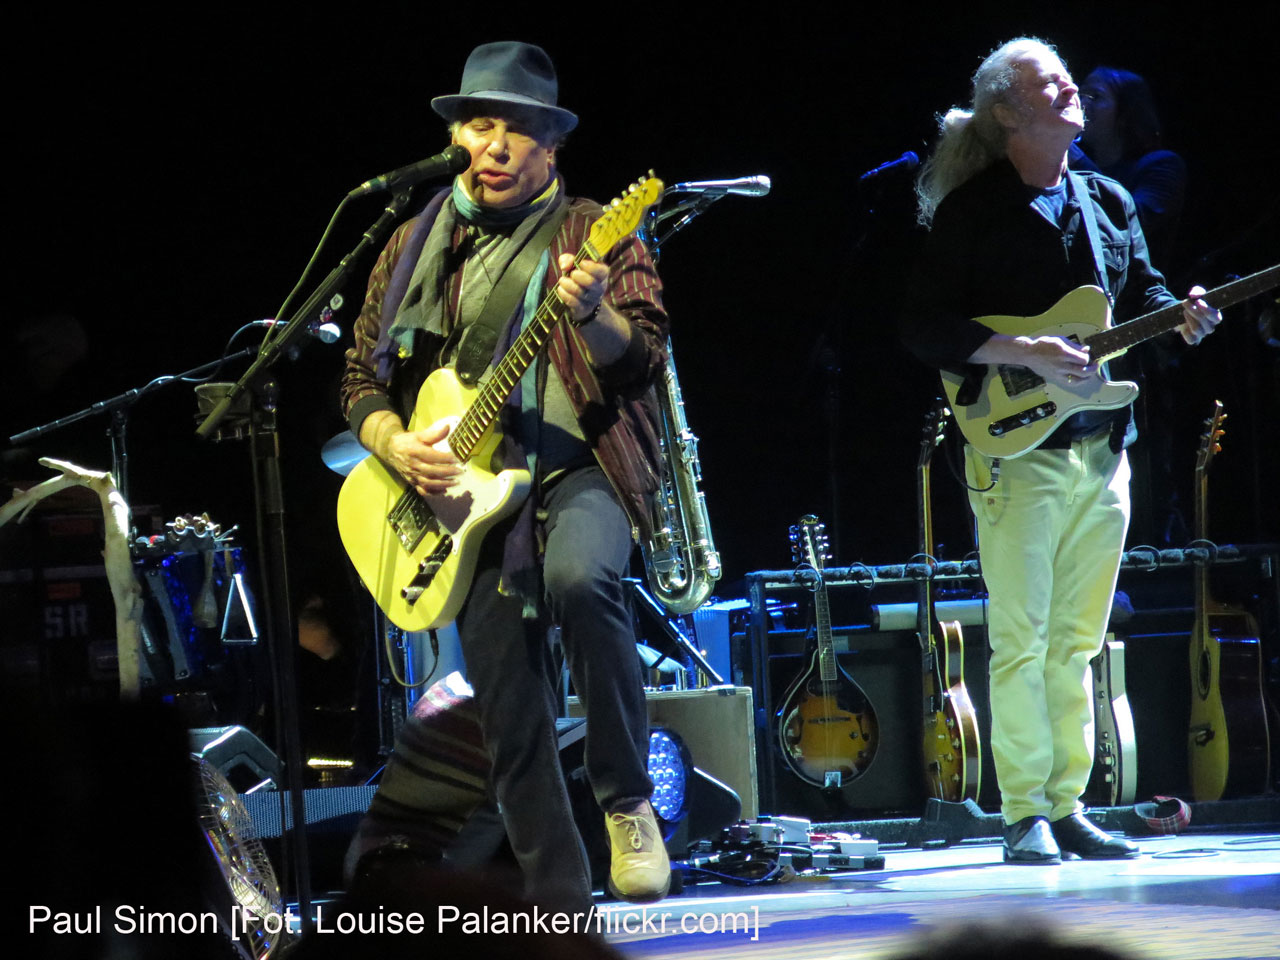 Paul Simon [Fot. Louise Palanker/flickr.com]